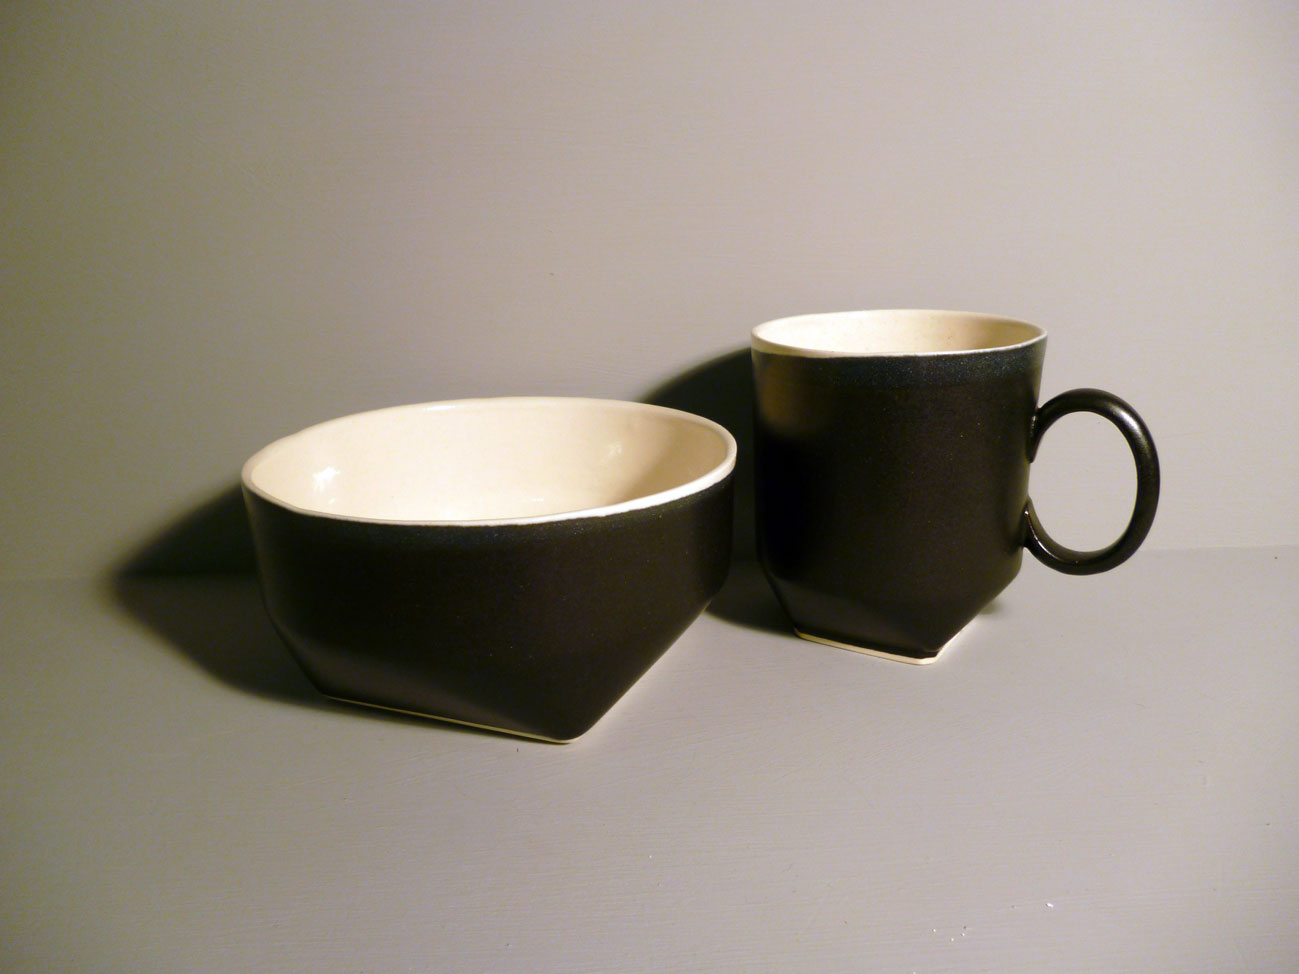 Breakfast Set in Graphite-Black